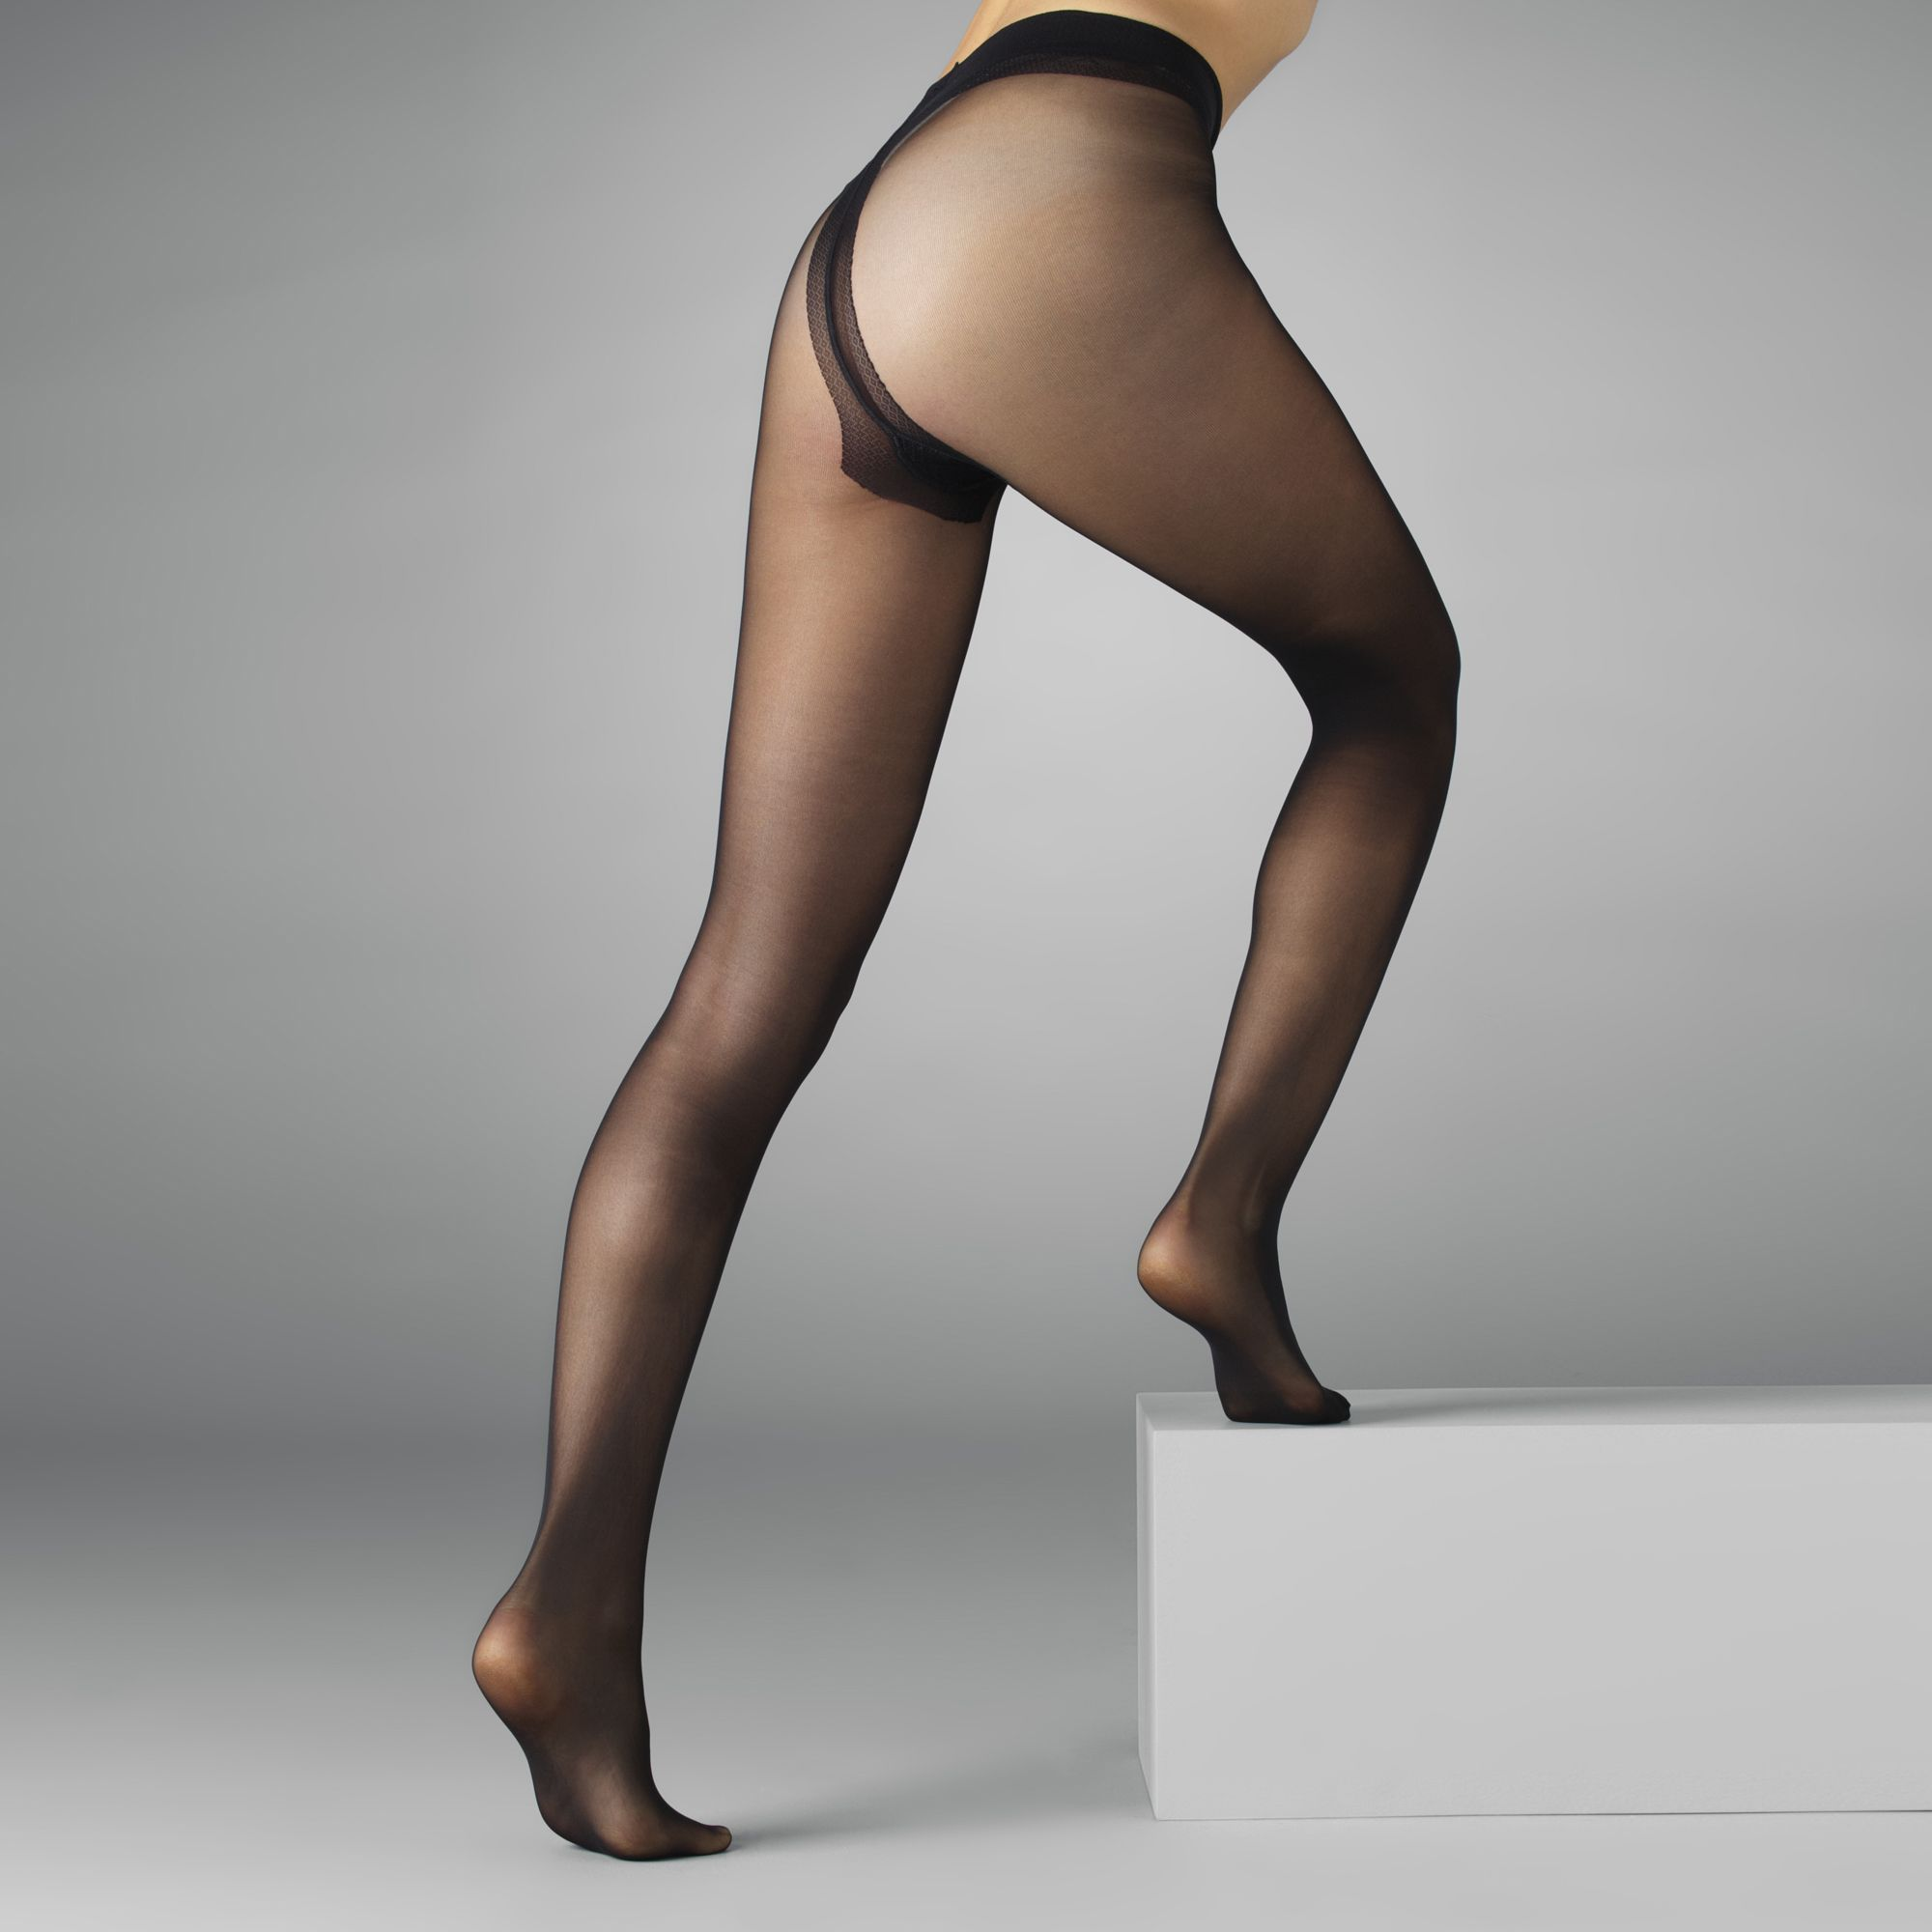 Shop for sheer tights online at Target. Free shipping on purchases over $35 and save 5% every day with your Target REDcard.